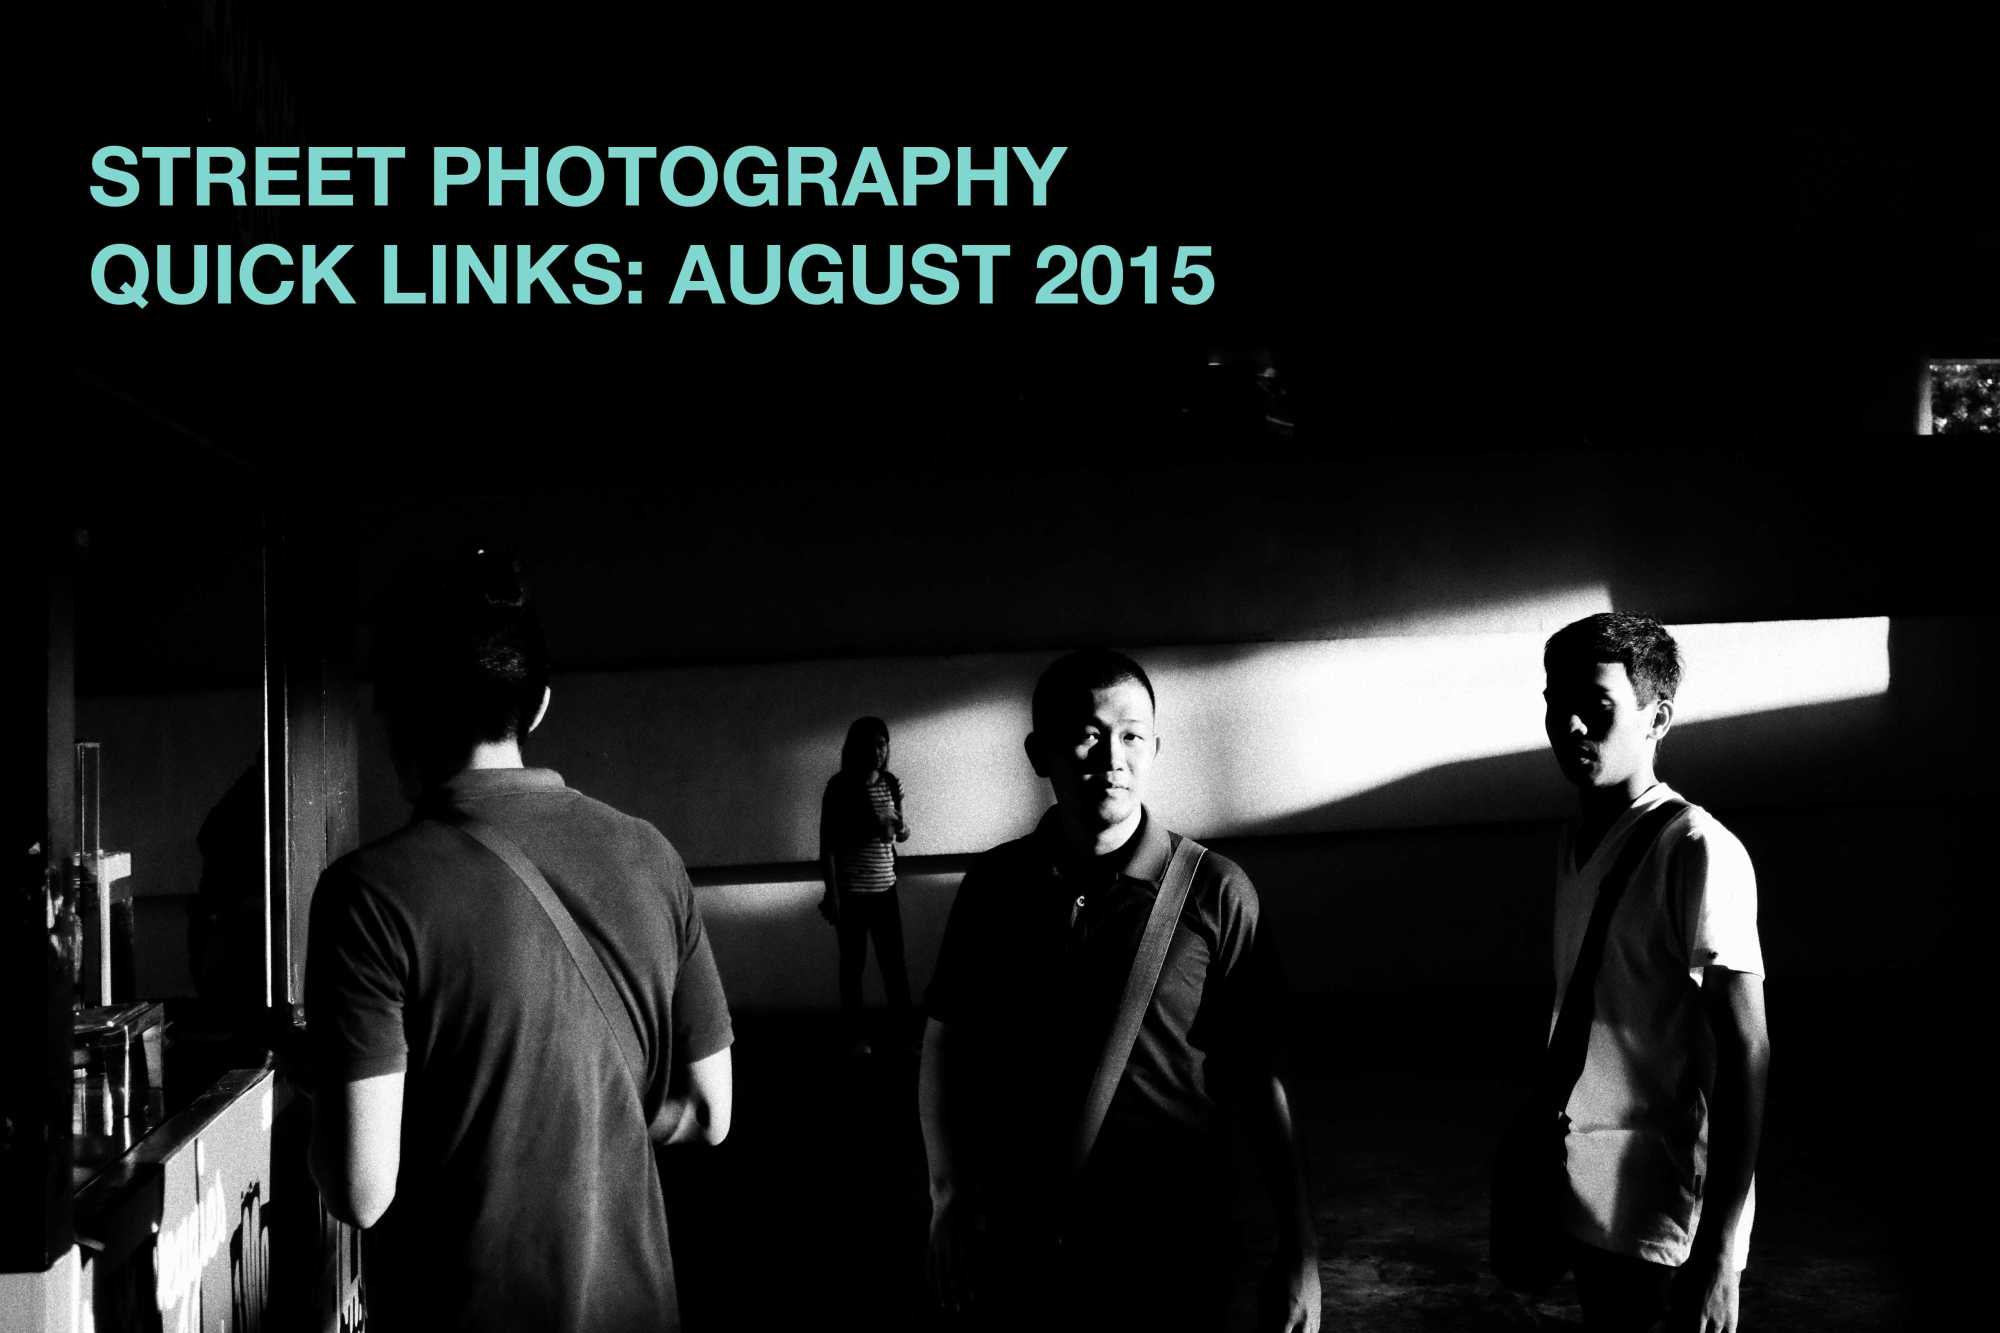 Street Photography Quick Links: July 2015